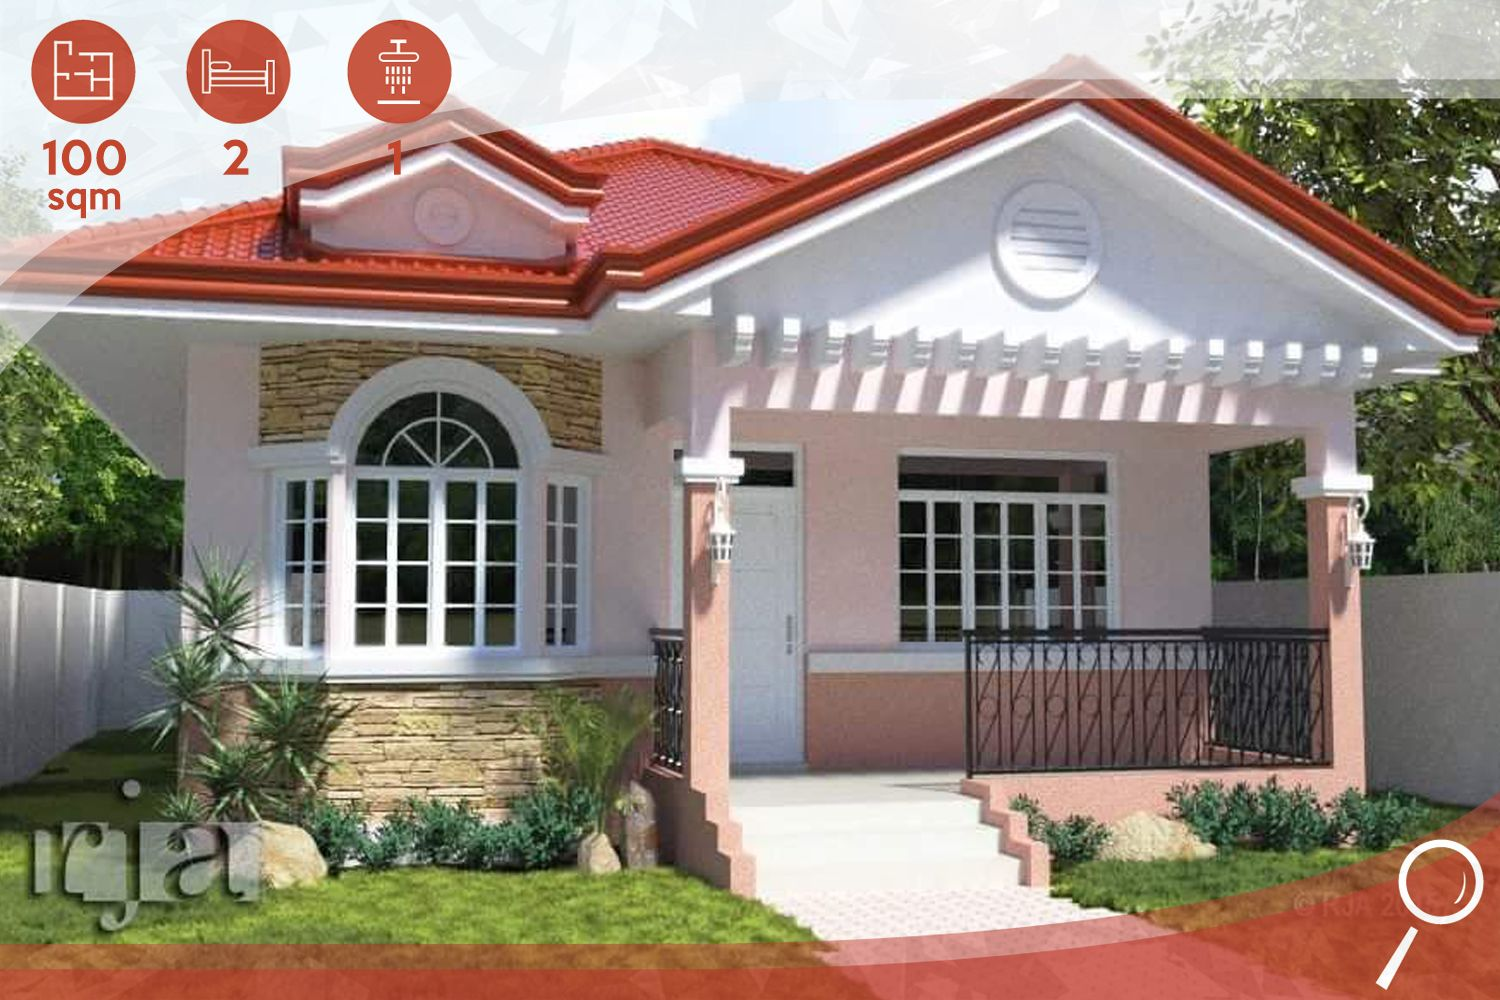 This twobedroom bungalow for sale in Baguio City is